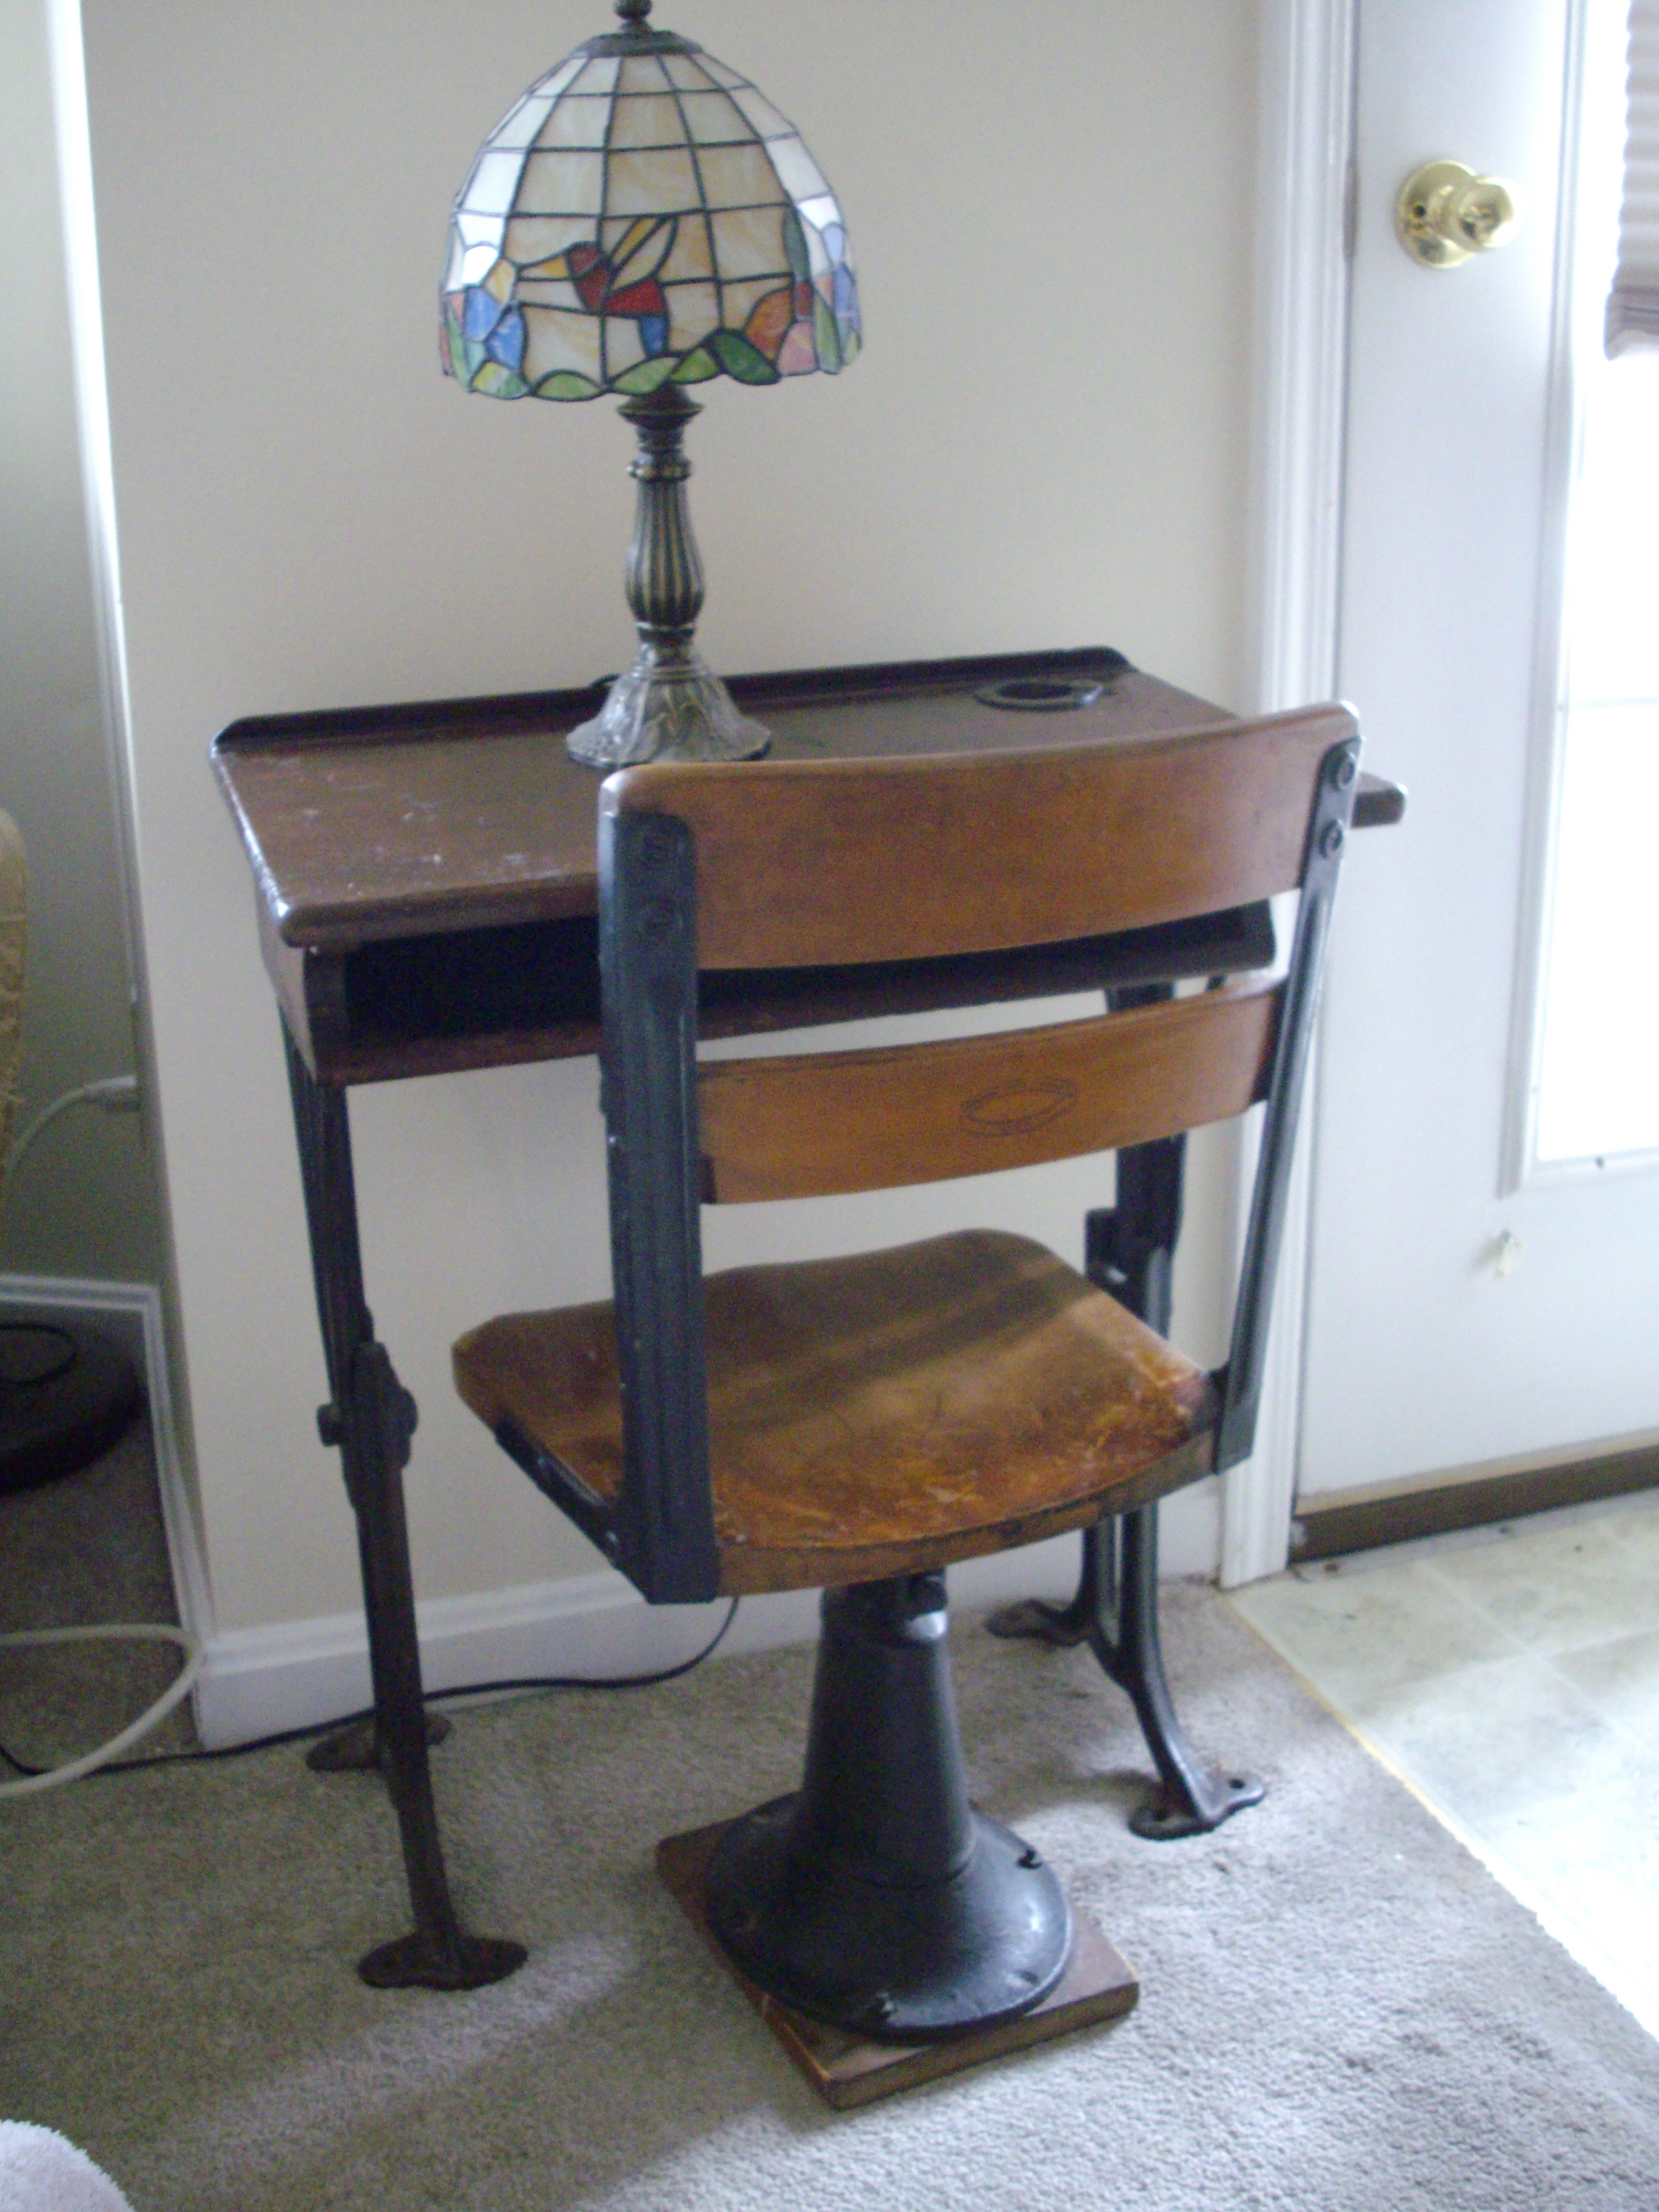 Childs Desk amp Chair by Chandler For Sale Antiquescom  : ori371507448IMGP2096 <strong>Used Reception</strong> Desks Sale from www.antiques.com size 2448 x 3264 jpeg 2495kB